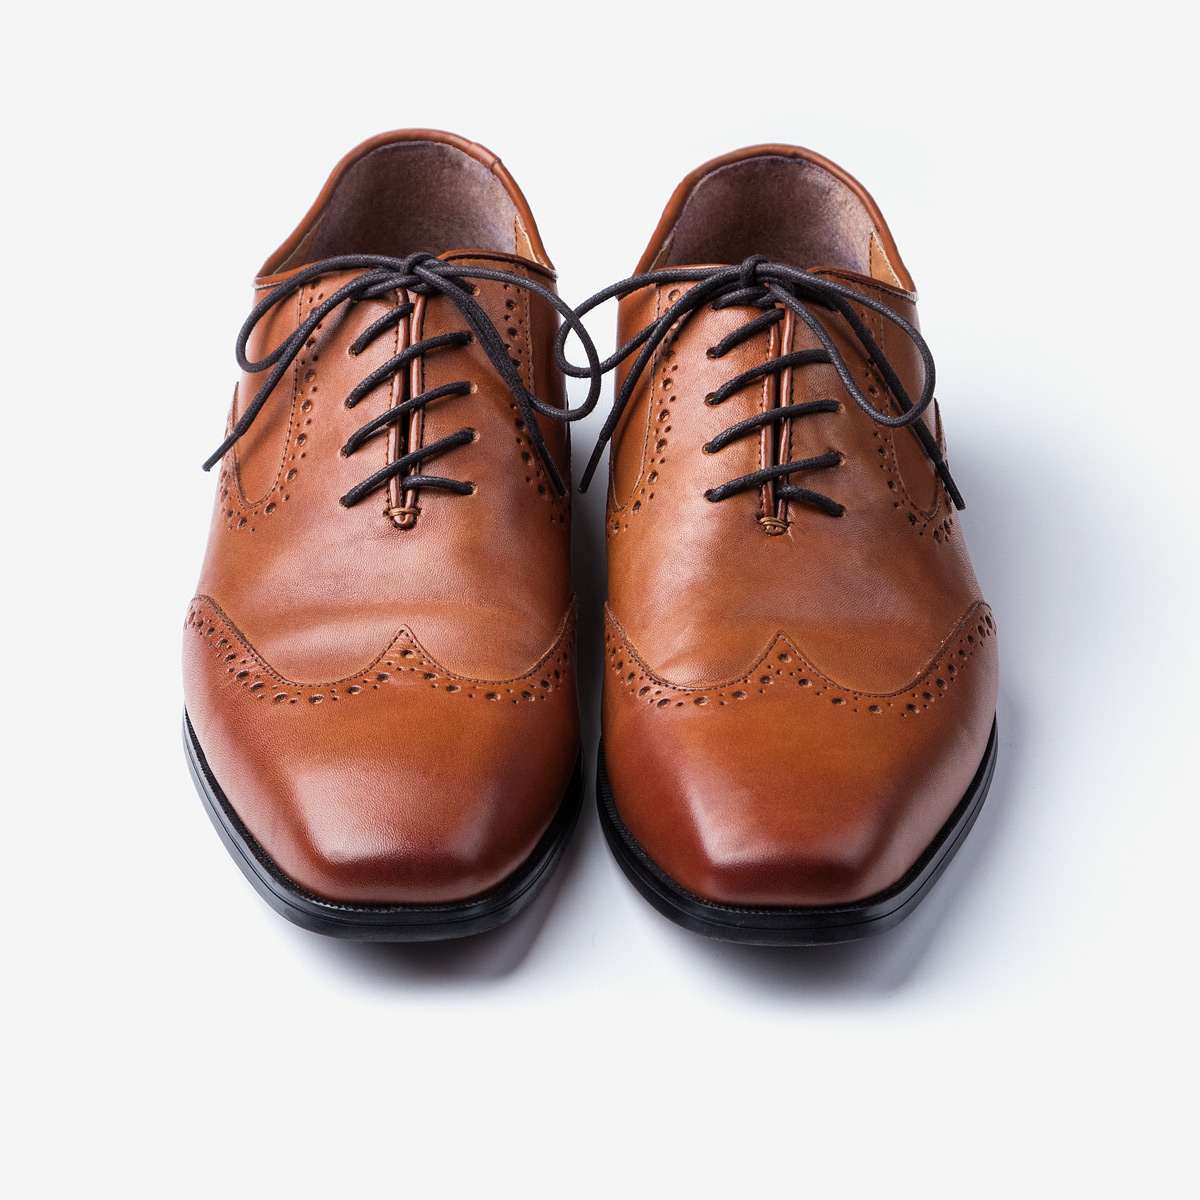 The Lacing Guide - Tie Your Dress Shoe Laces Like a Pro